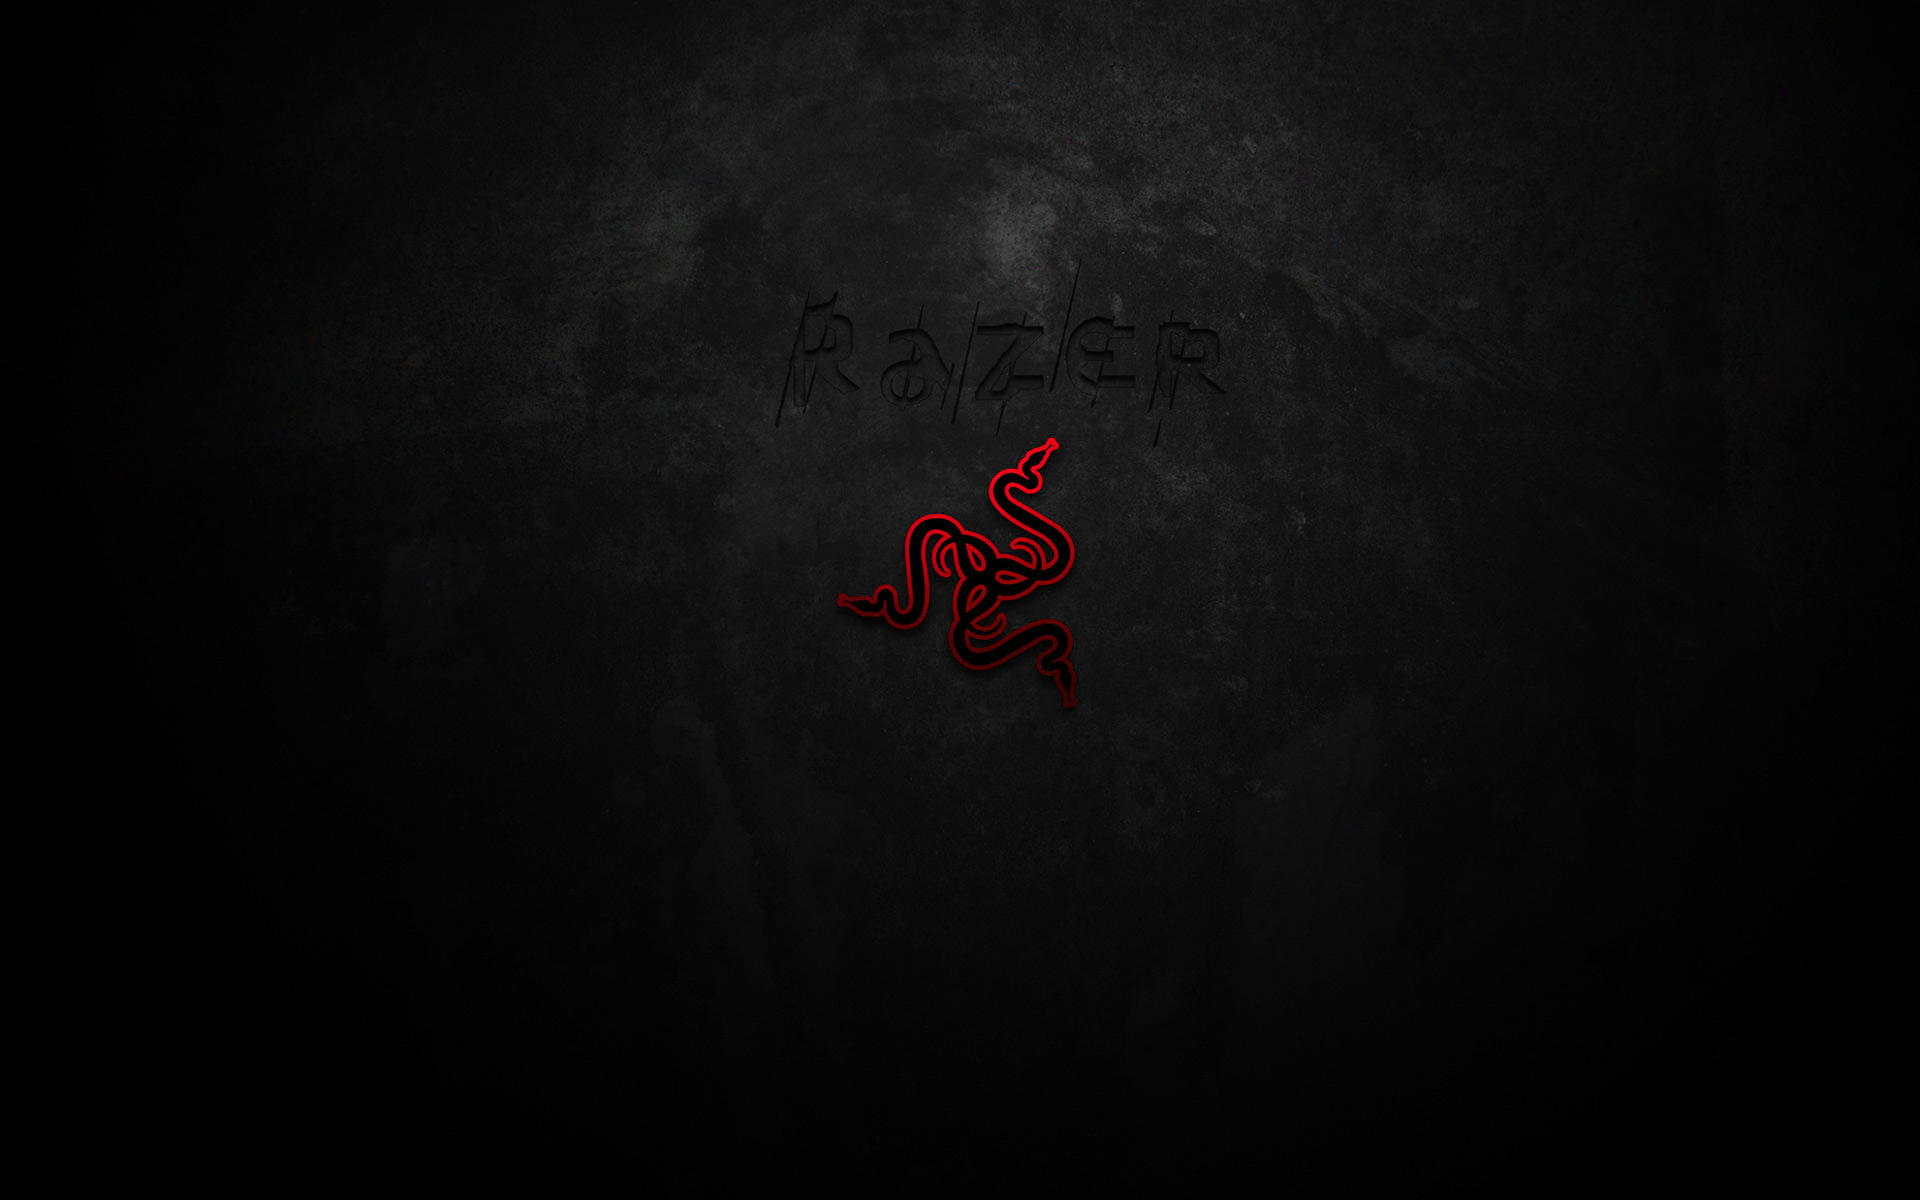 razer wallpaper 1920x1080 red - photo #17